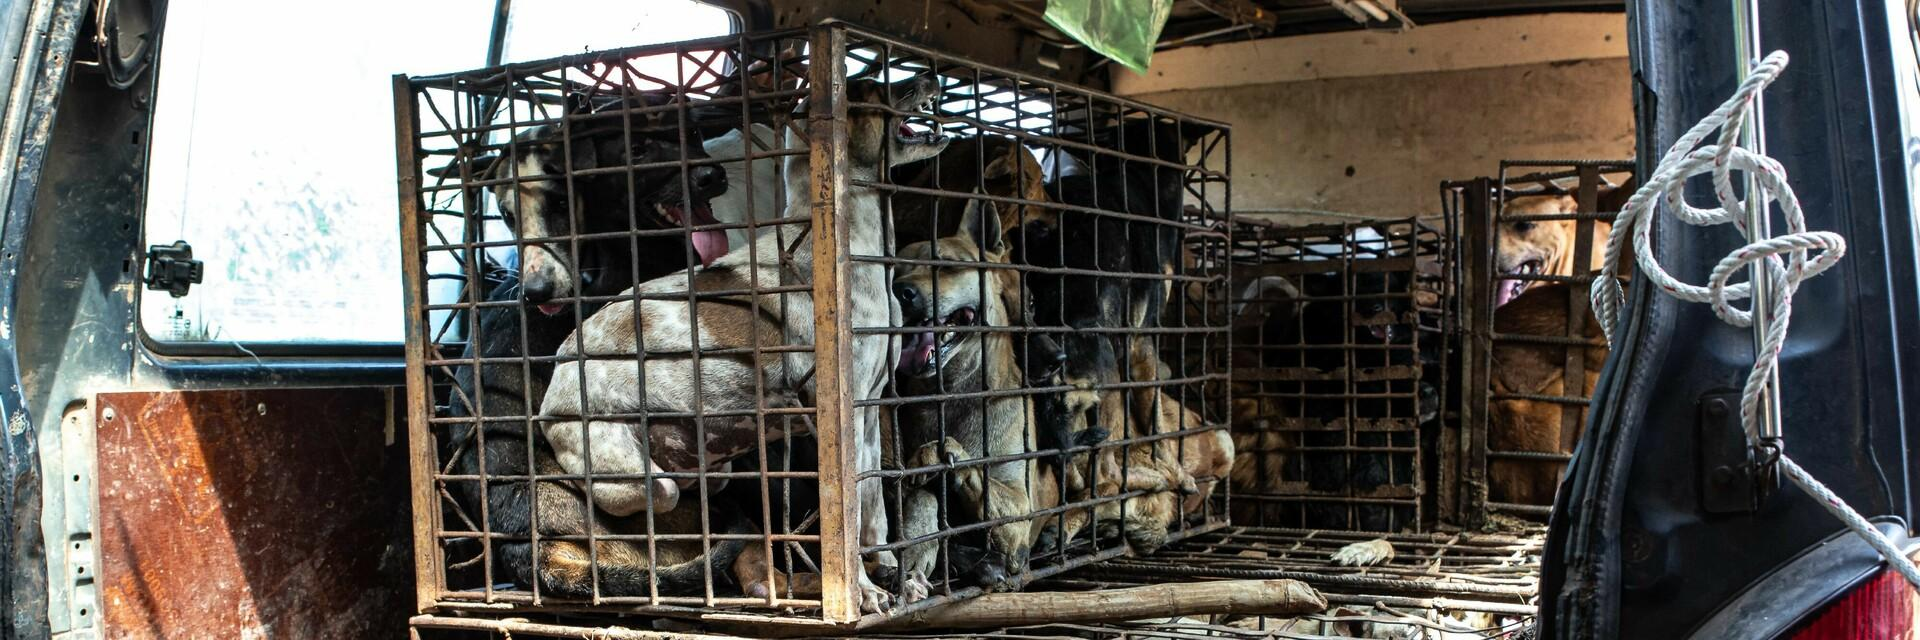 Dog and Cat Meat Trade